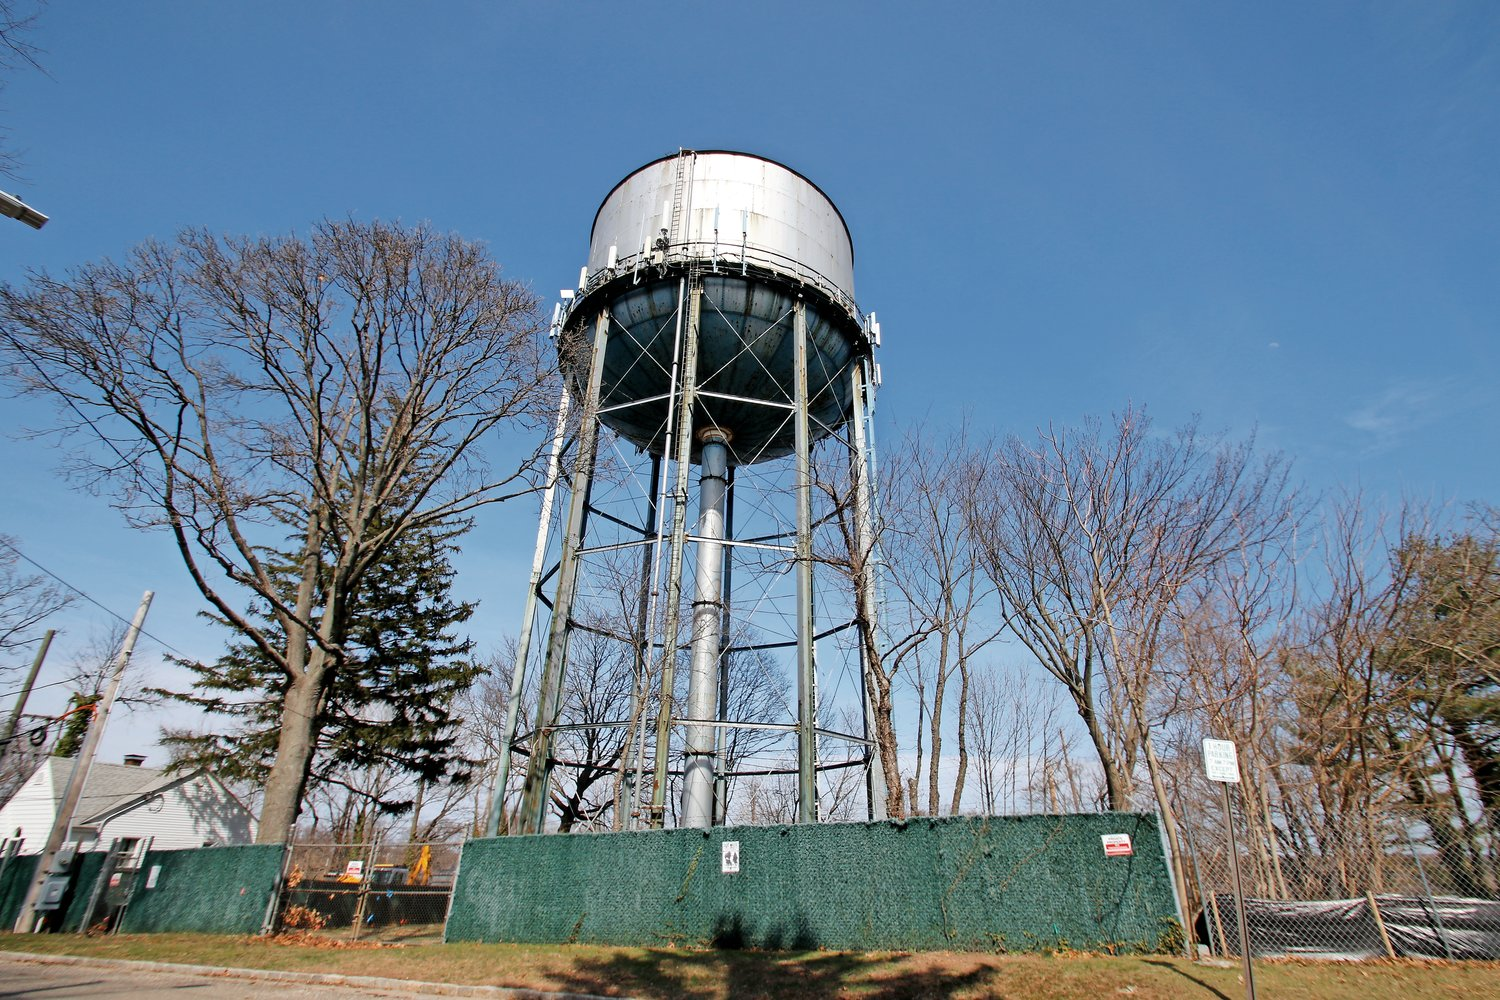 Work to replace the New York American Water tank on Dumond Place is set to begin later this month